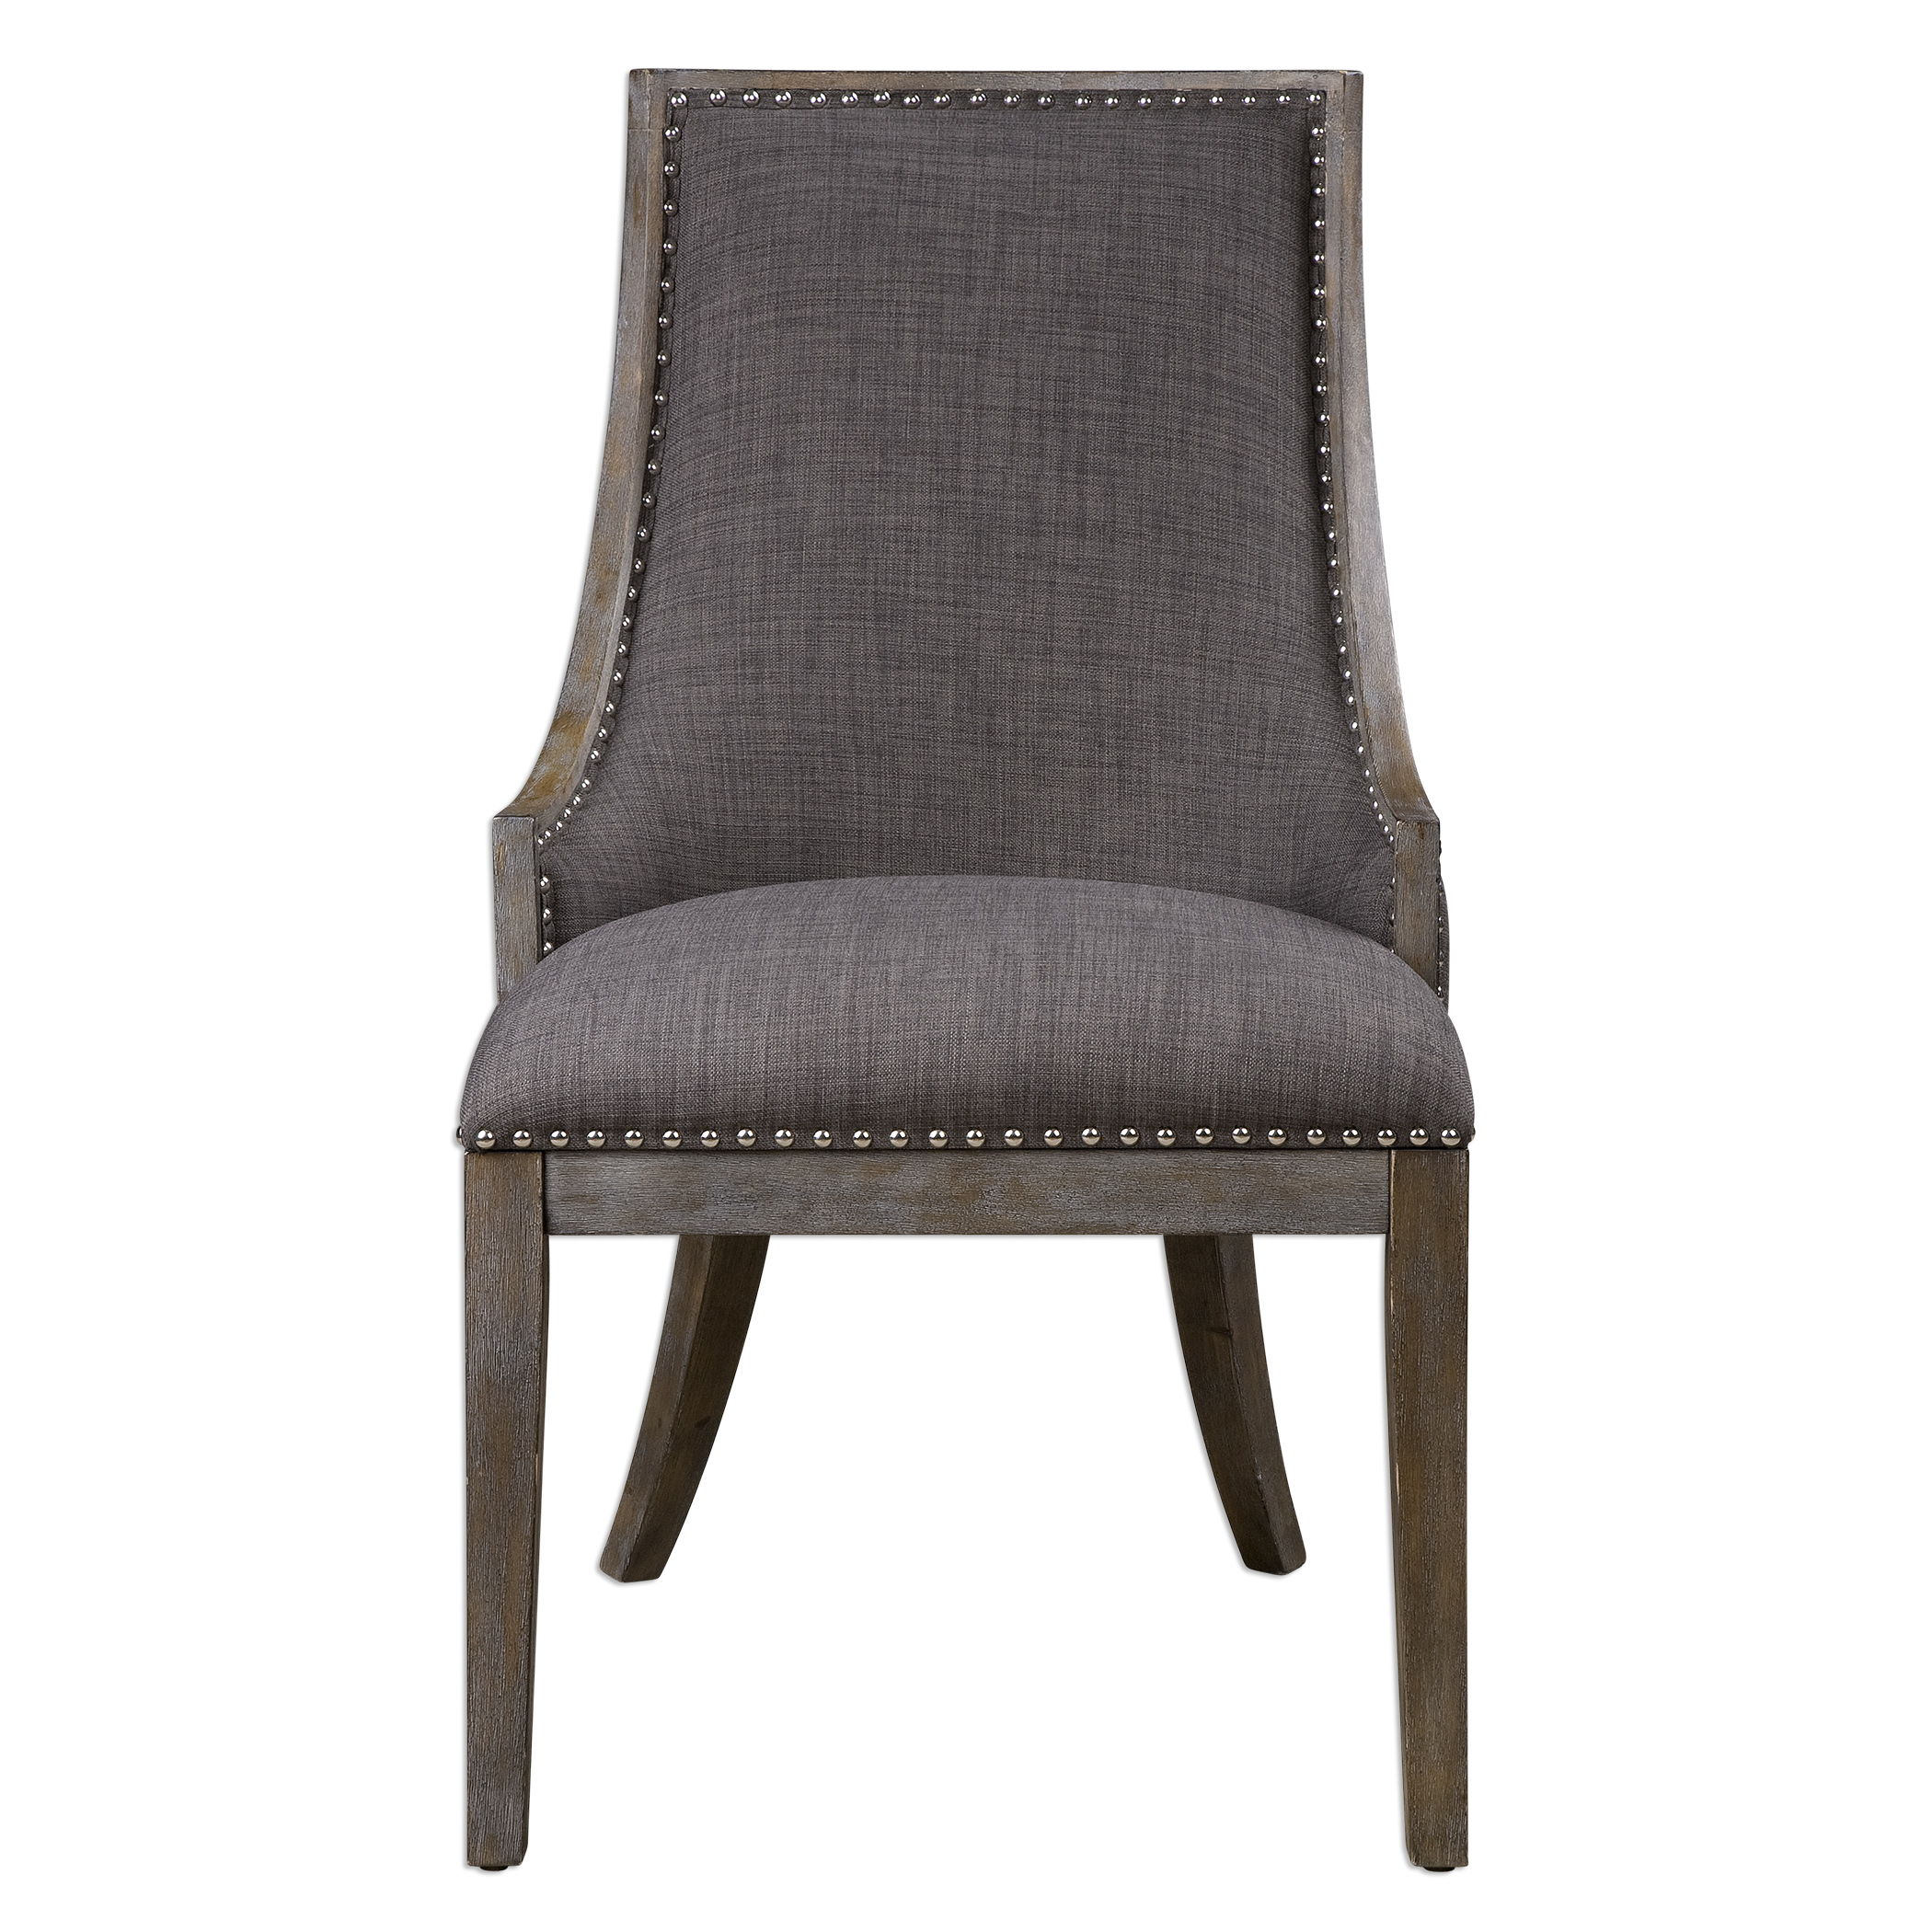 Accent Furniture - Accent Chairs Aidrian Charcoal Gray Accent Chair by Uttermost at Stuckey Furniture